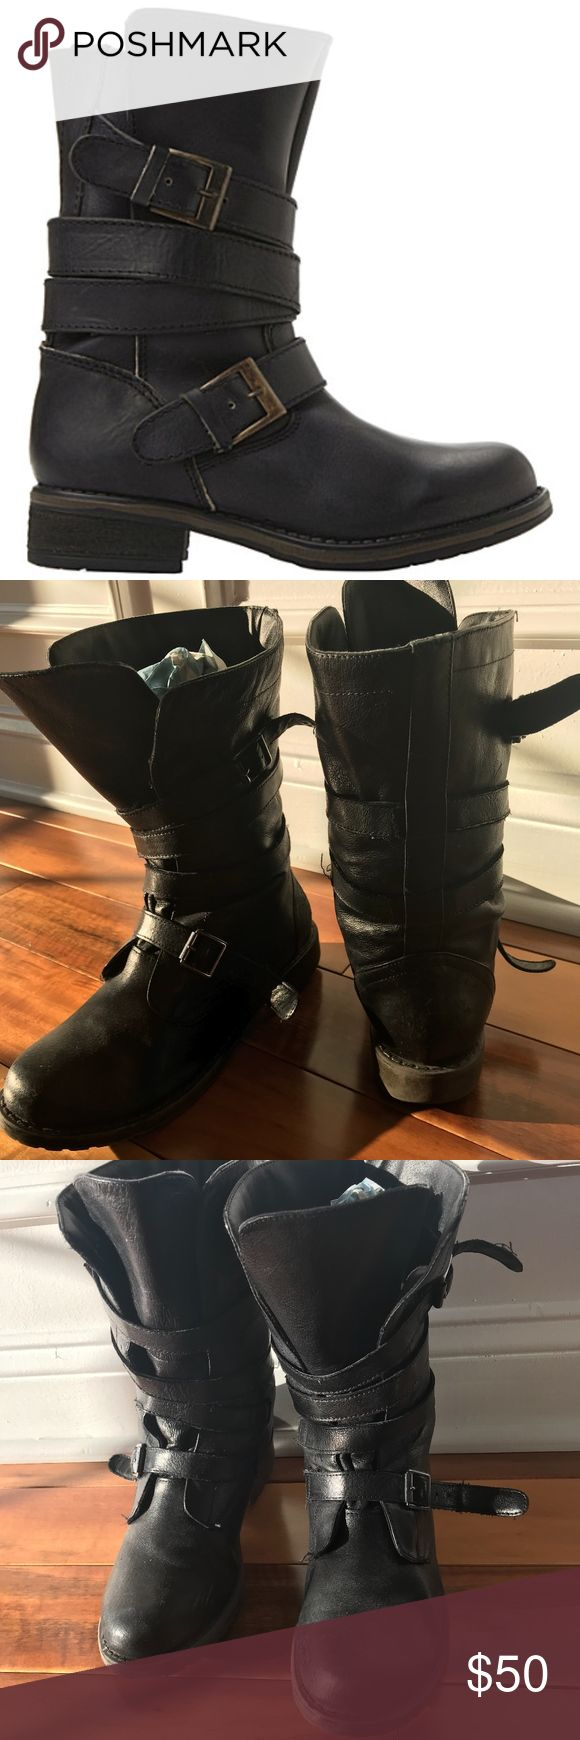 """STEVE MADDEN Kindell Leather biker boots Steve Madden leather biker boots Slips on Round toe, buckle fastening strap detail at ankle and calf, brass hardware, block heel 100% leather; synthetic lining Use specialist leather cleaner Heel height 1"""" Steve Madden Shoes Combat & Moto Boots"""